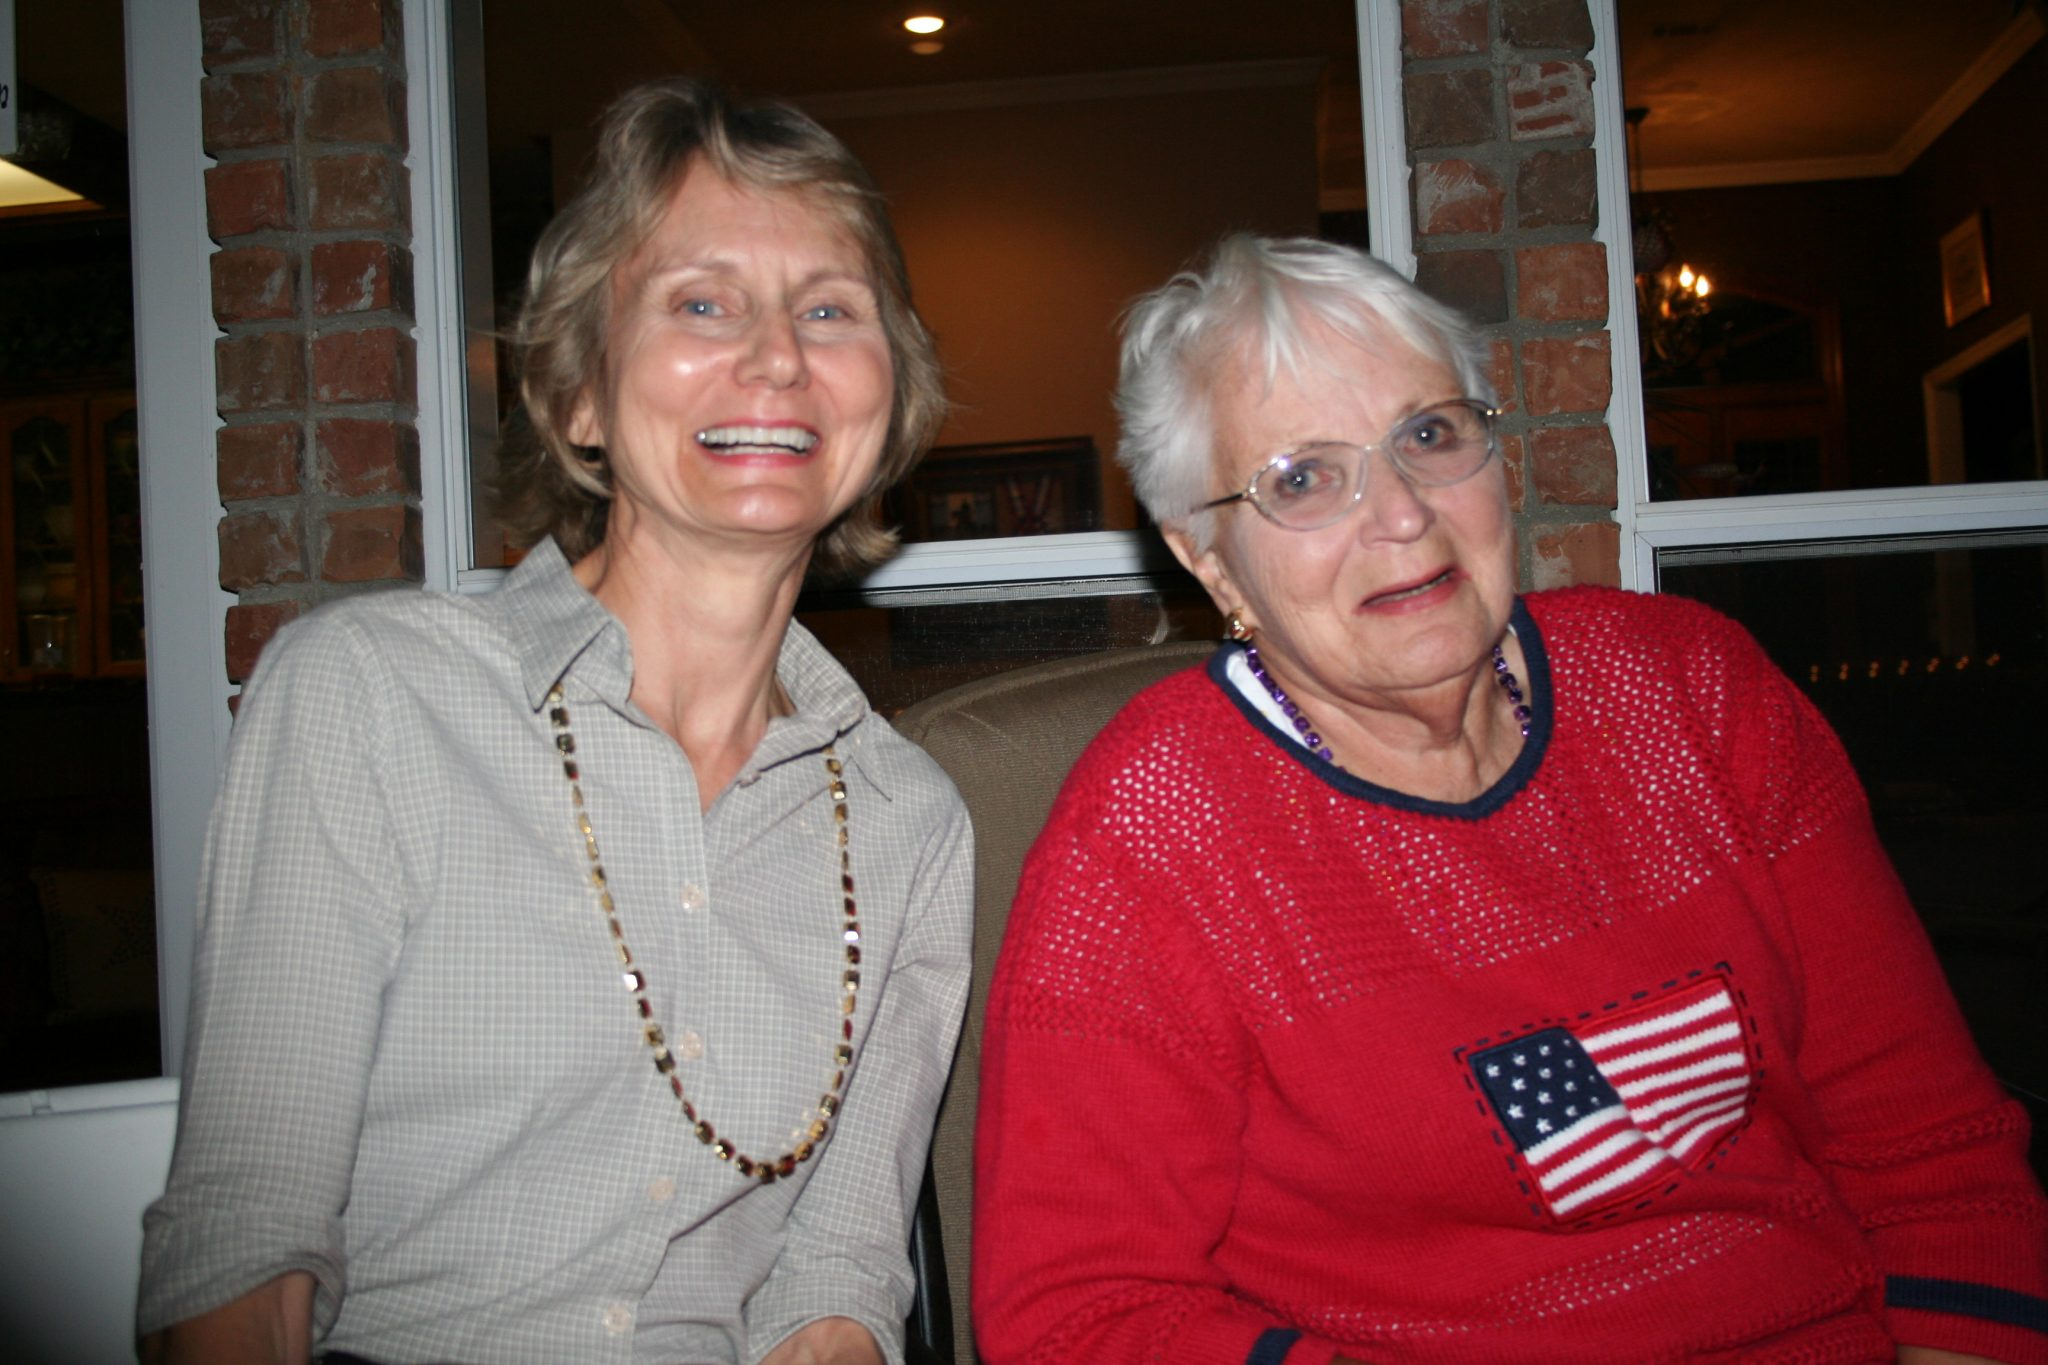 As Mother & Daughter, we often joined in hearty laughter.